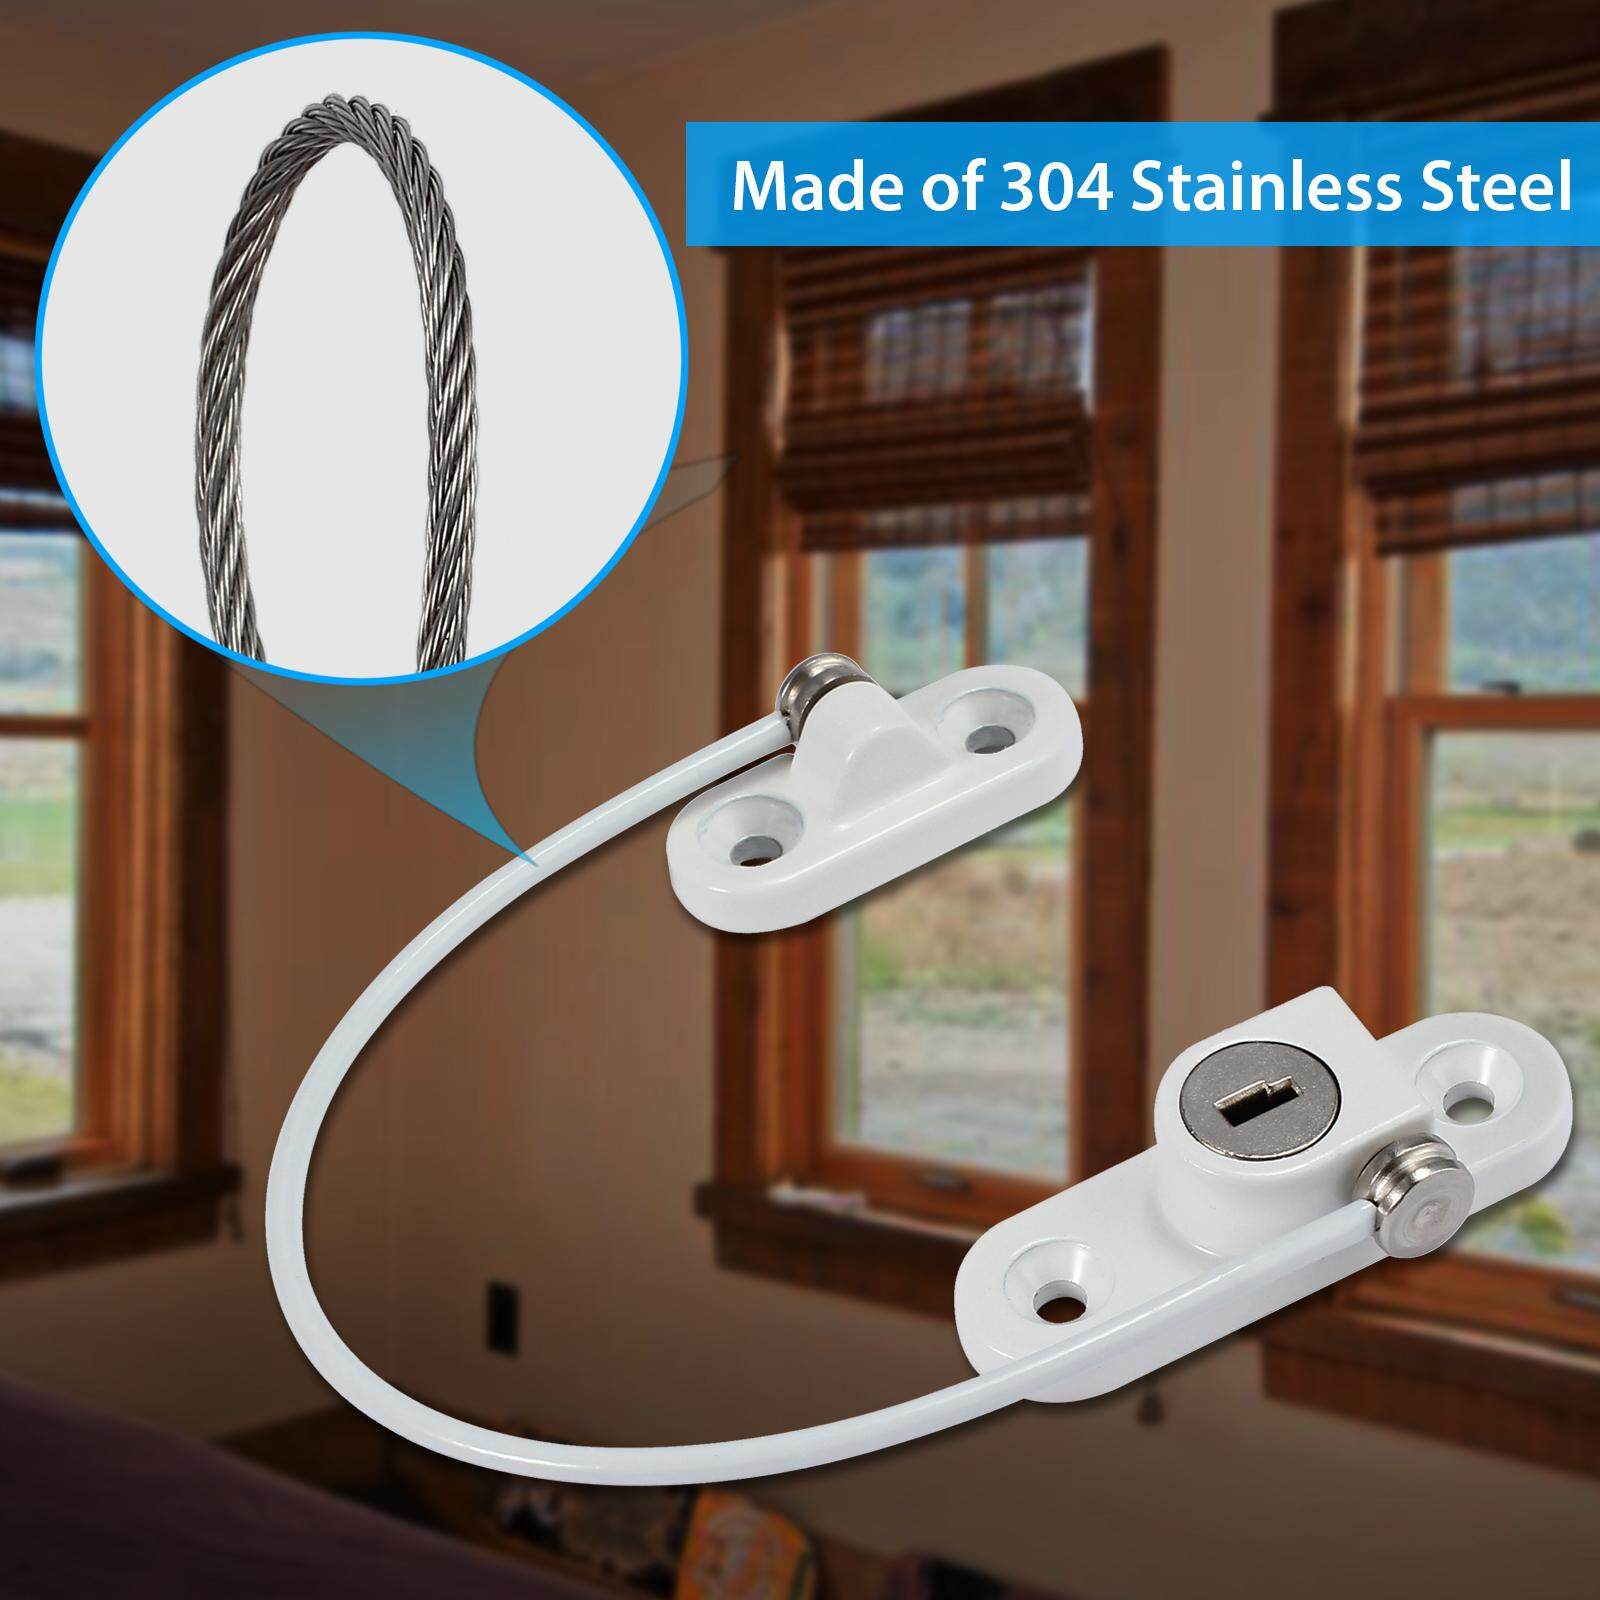 1 Pack Window Door Restrictor Locks Window Door Cable Restrictor Lock with Screws Keys Child Baby Safety Security Wire Catch for Home Public and Commercial Applications